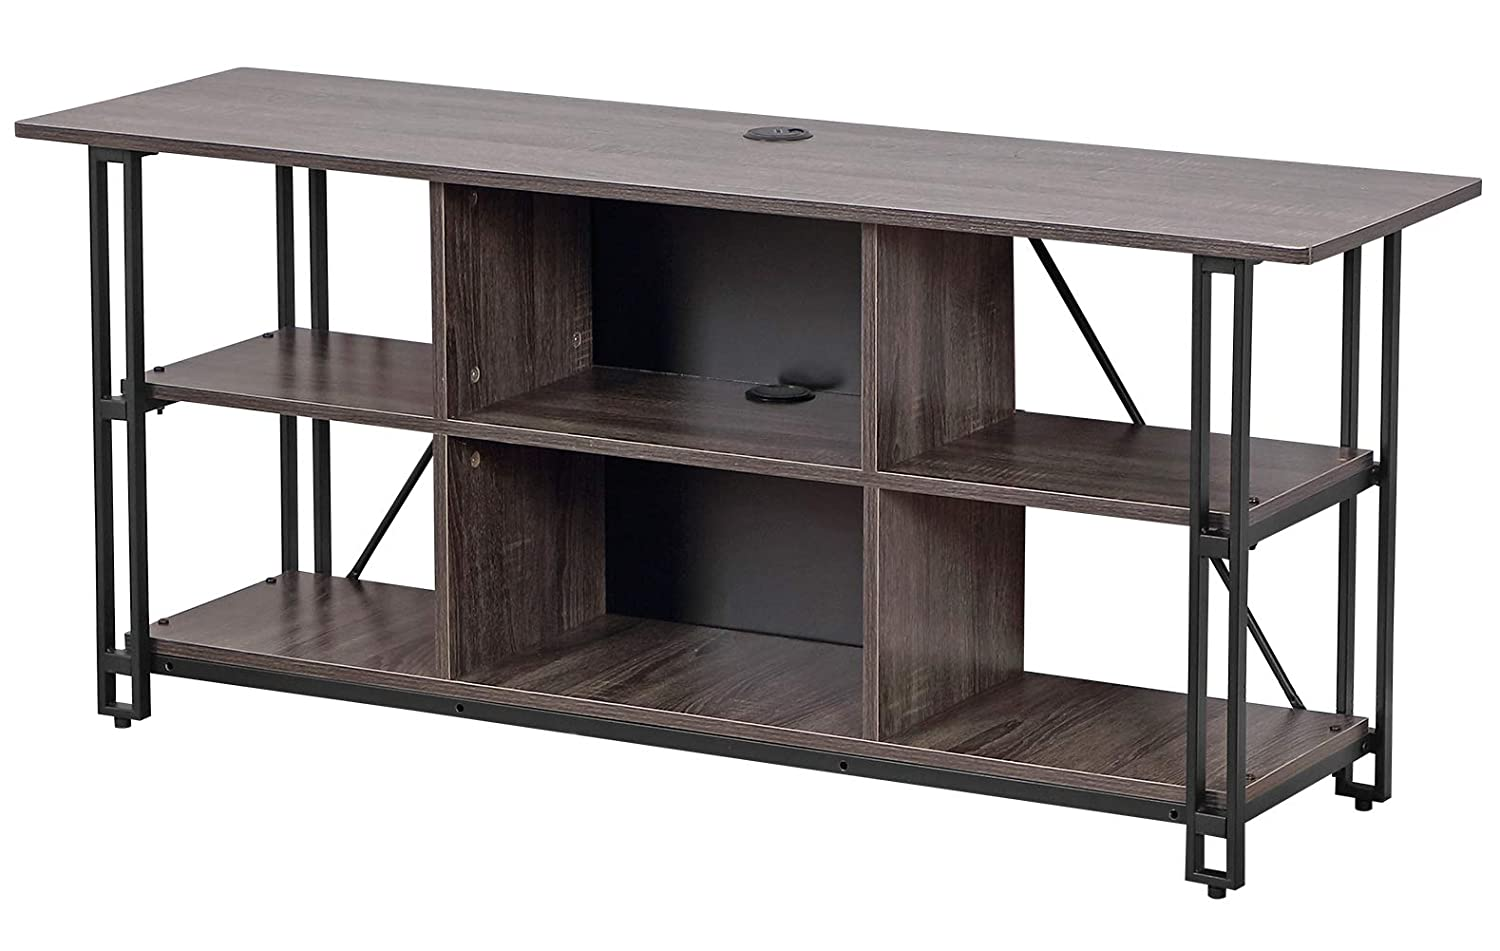 Bizzoelife Entertainment Center TV Stand Console Table 54 Inches Industrial Media Stand 3-Tier with Open Storage Shelf, Rustic